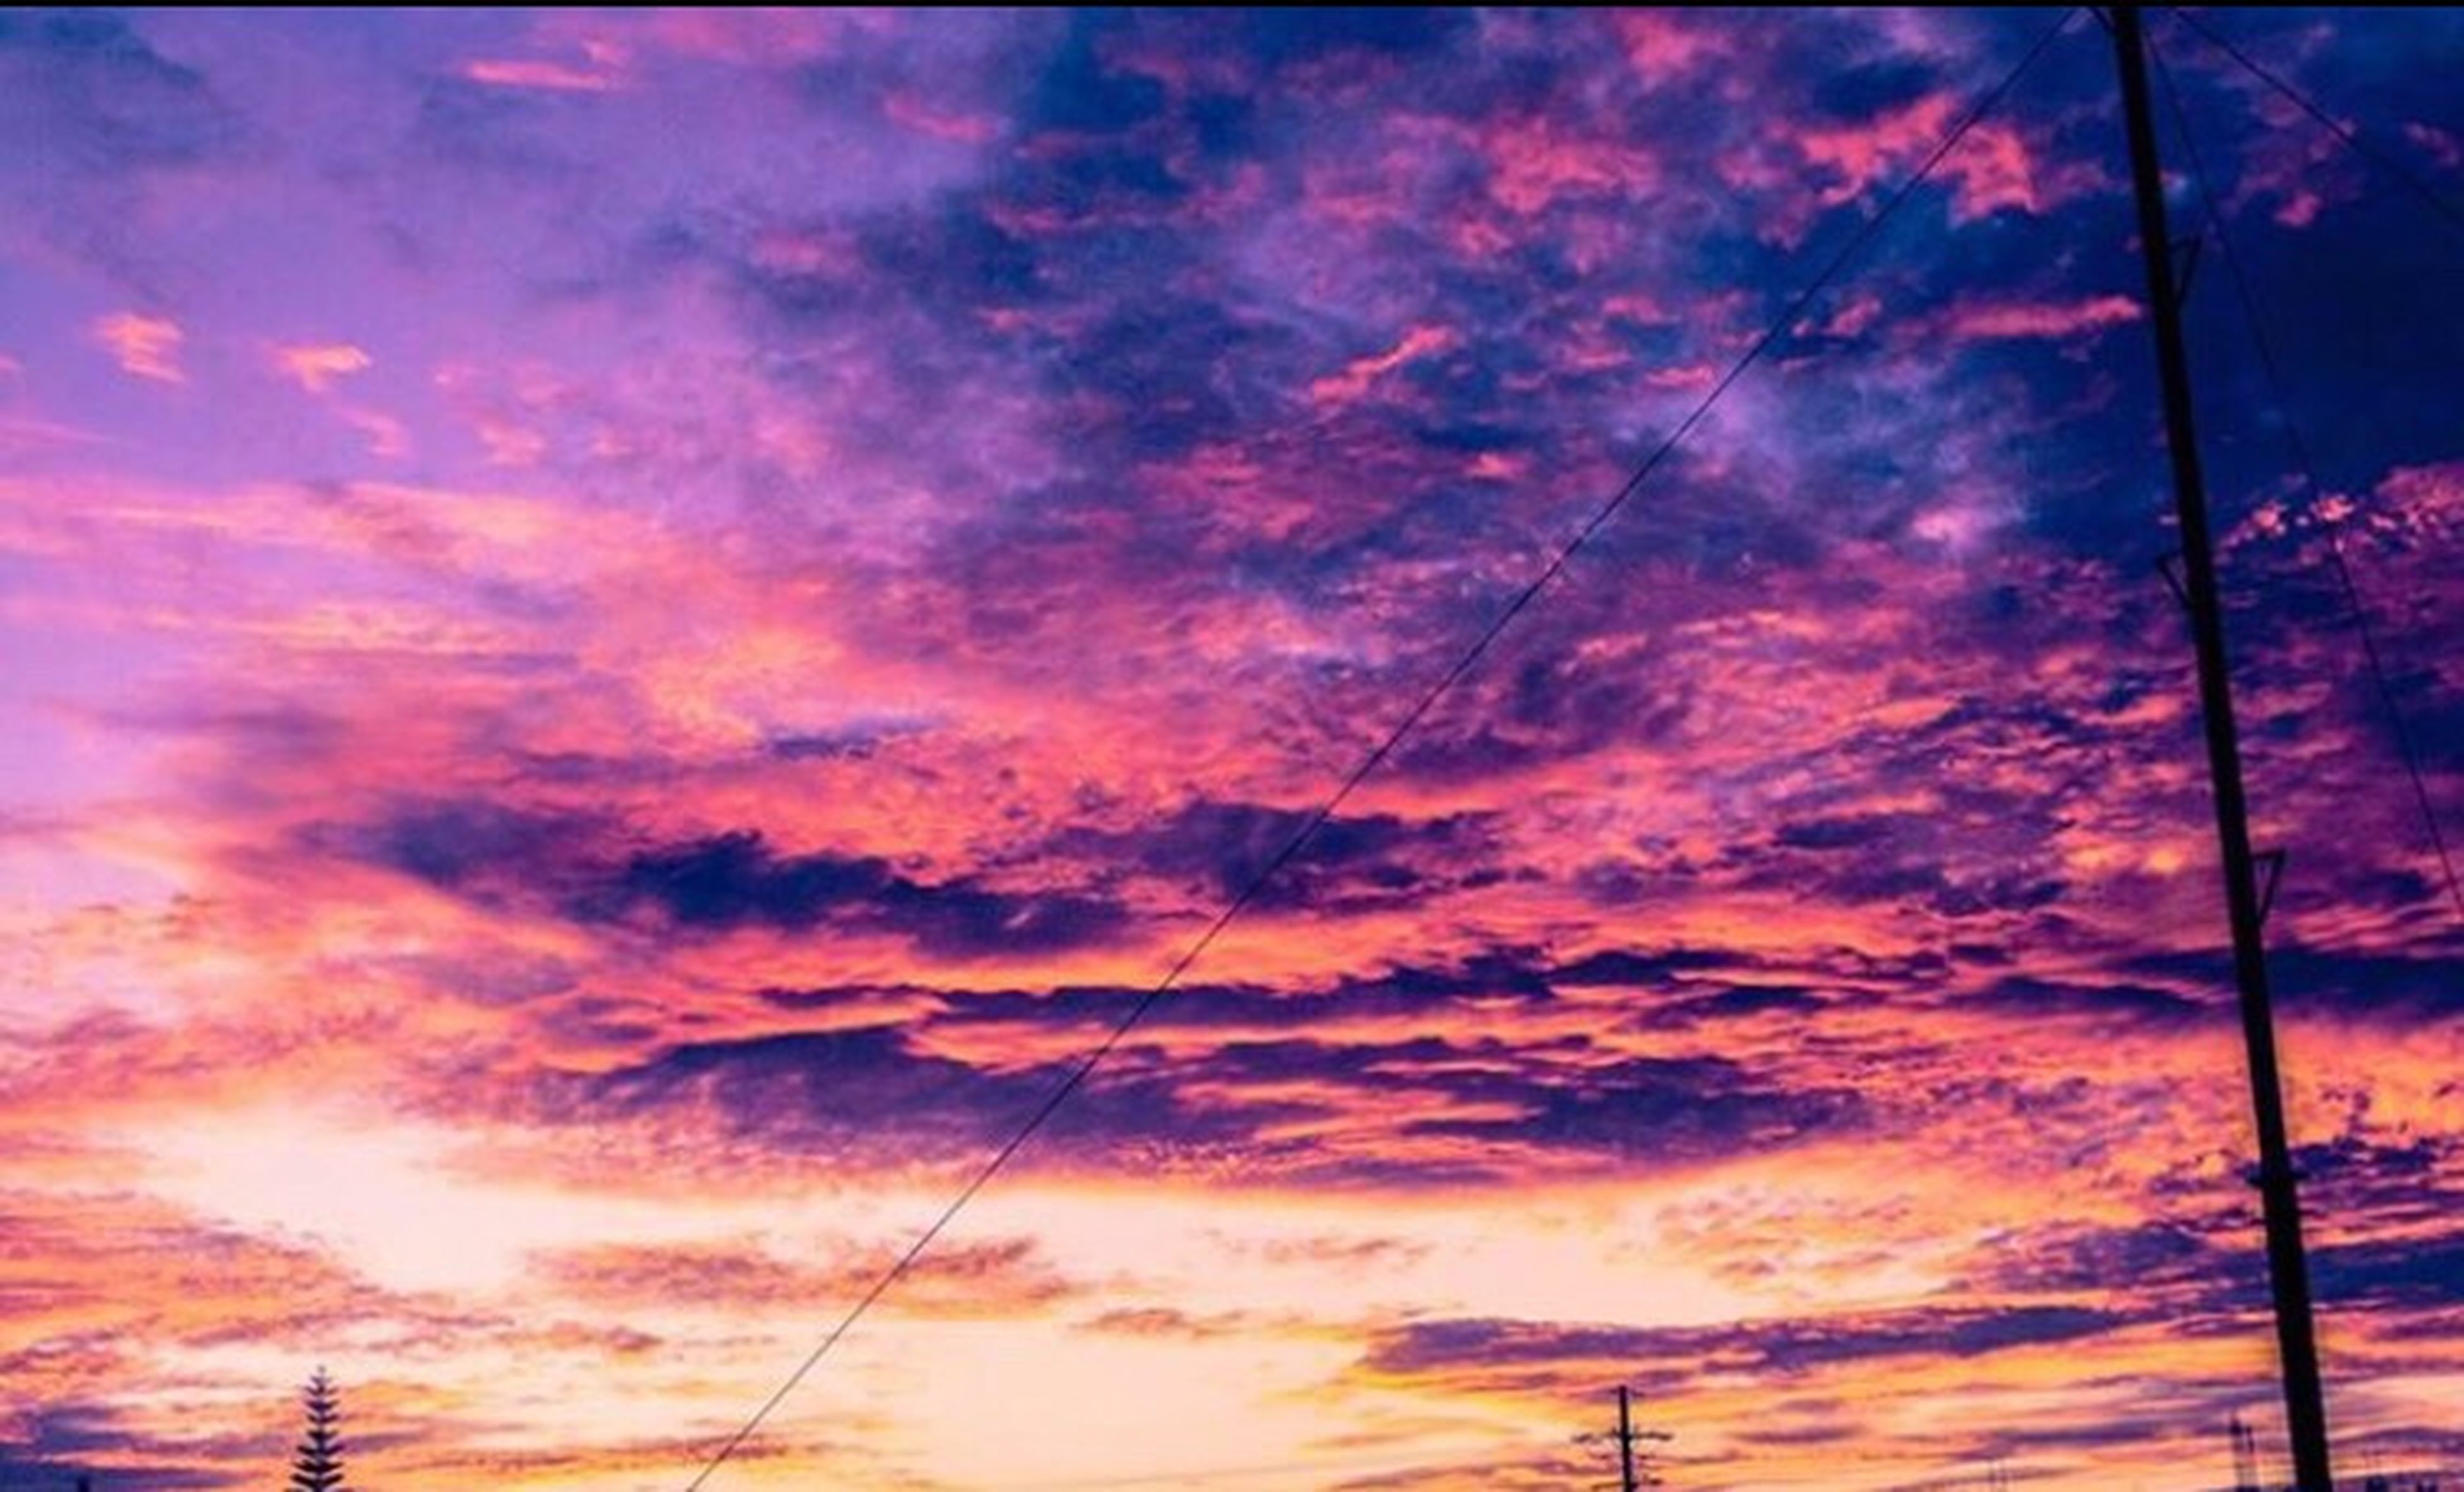 Sometimes you may not get exactly what you thought you wanted, because of hidden blessings you never saw coming. Sky Love Gods Gift Gods Creation Radiant Sky With Color Combination Afternoon View Portrait Reflectance Sky Glow Happiness Heavenly Satisfaction Blessed Blessings